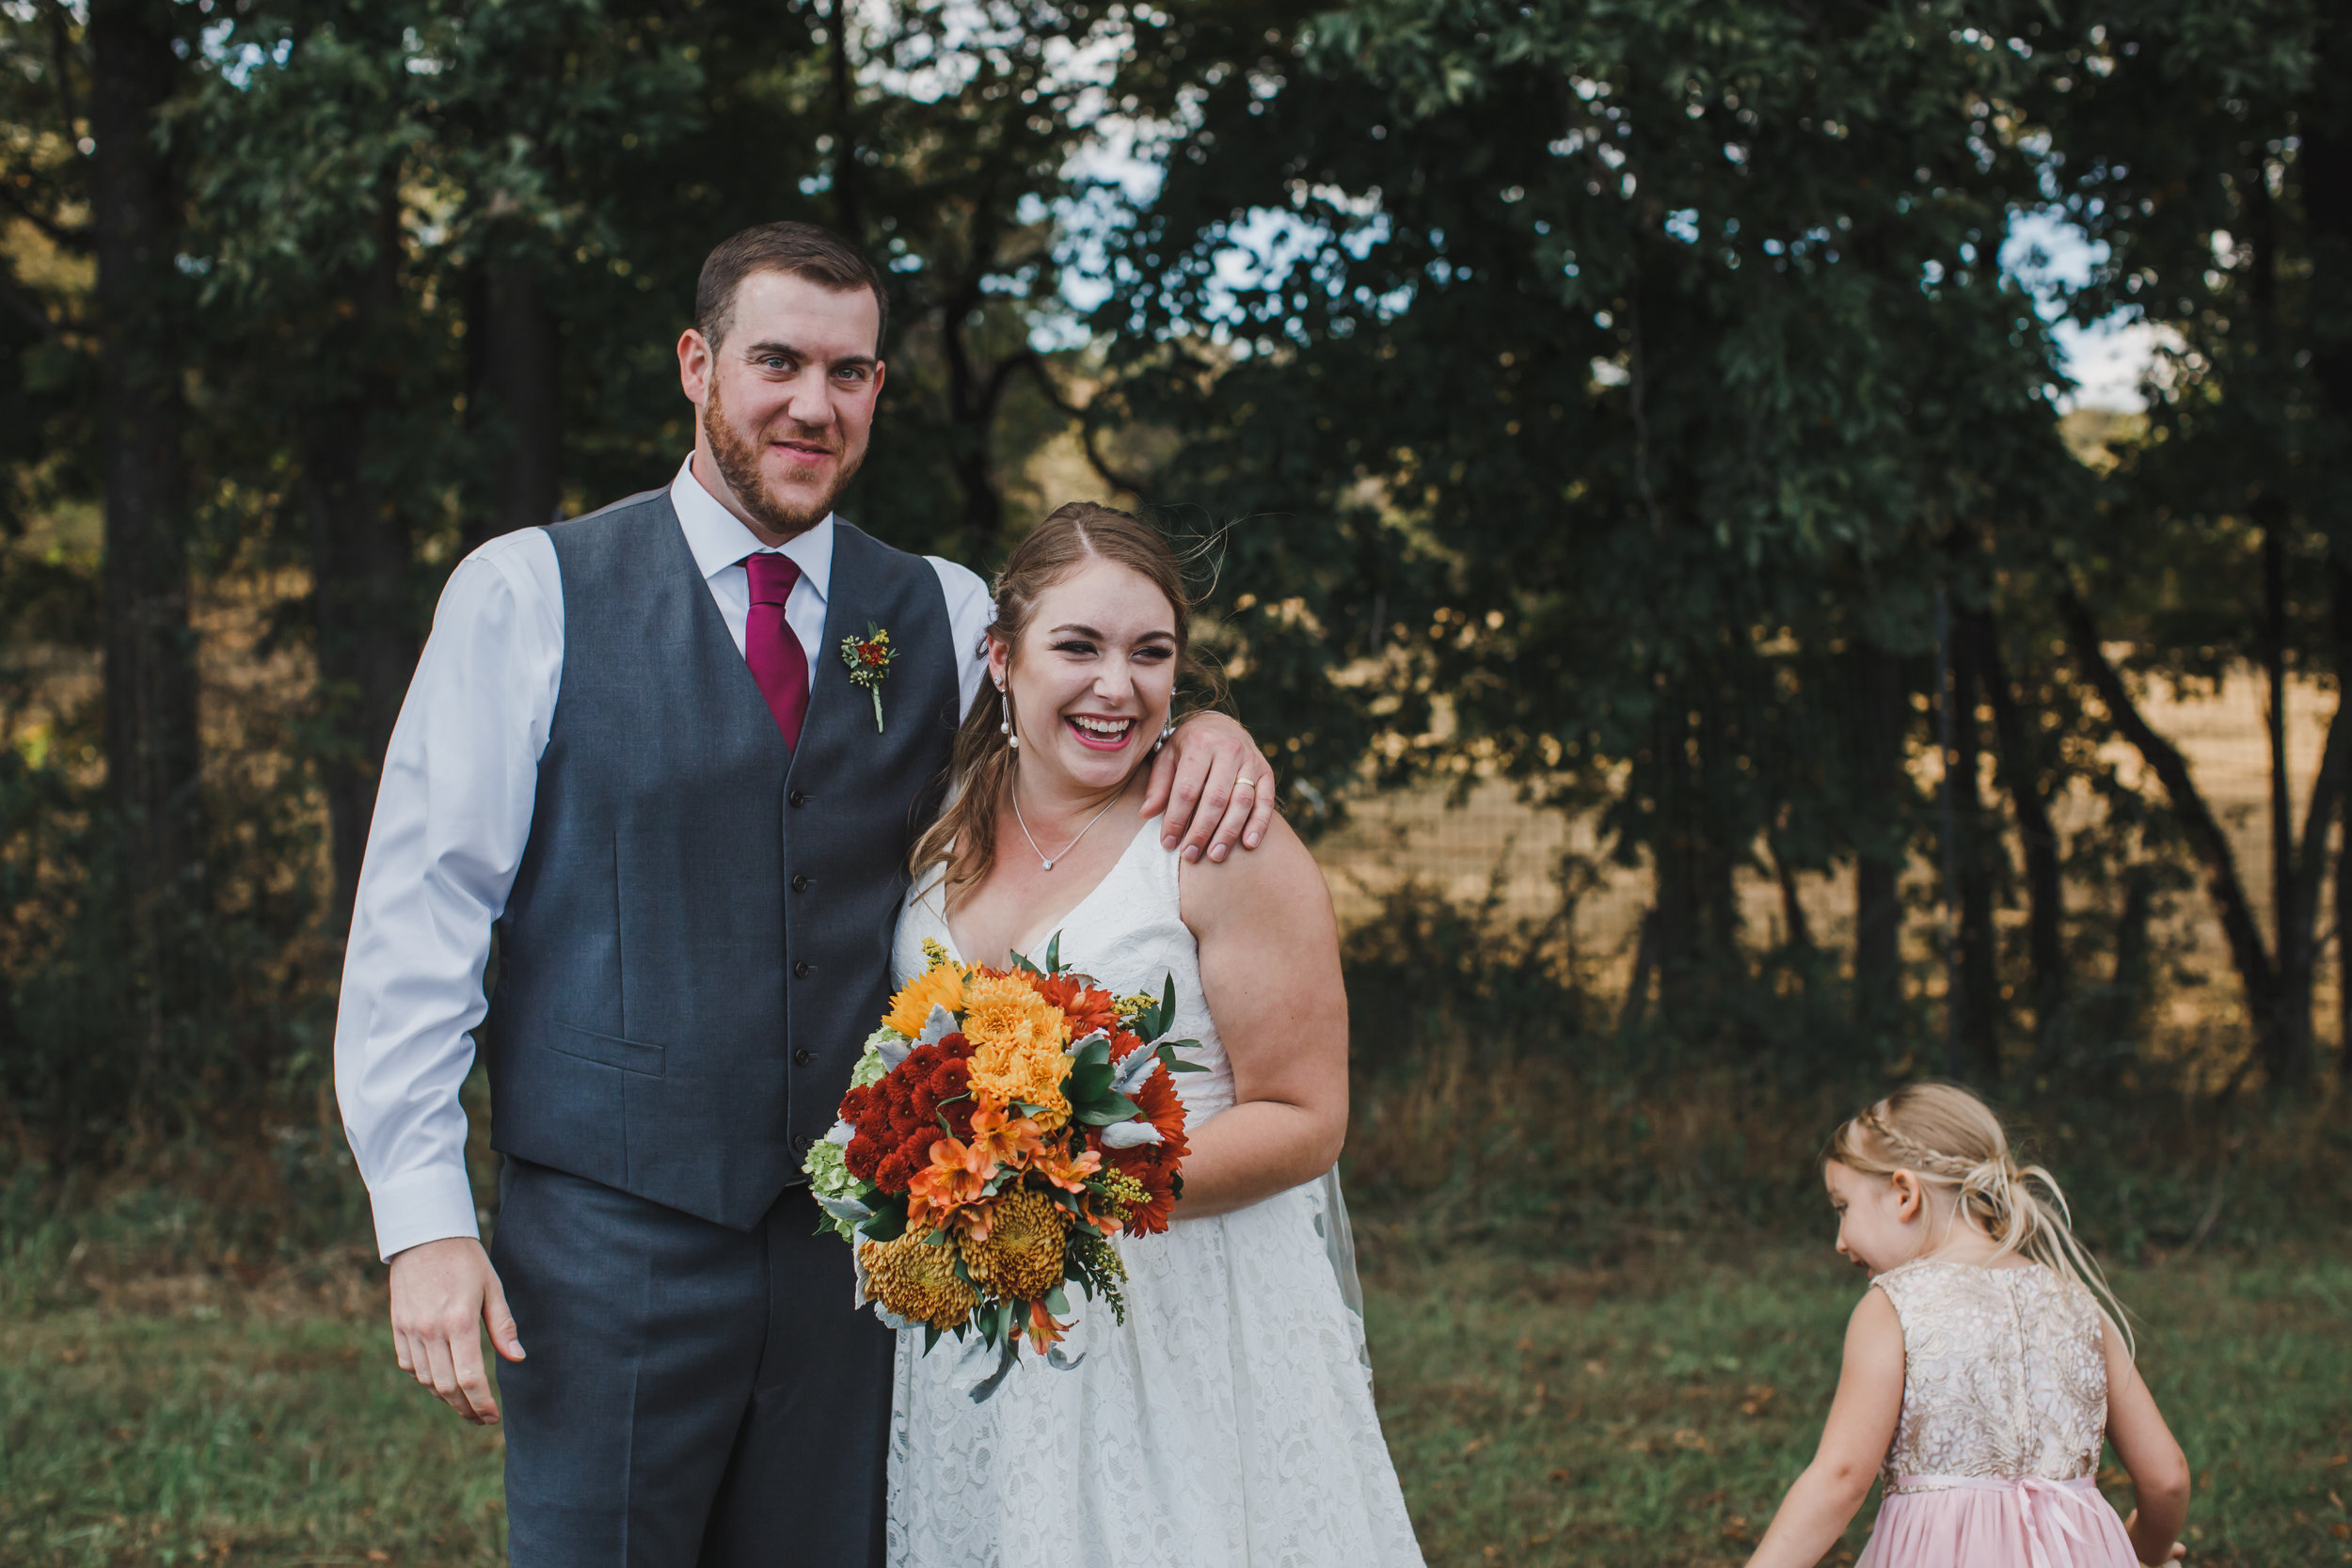 Fling - Virginia Wedding Photographer - Photography by Amy Nicole-260-8.jpg